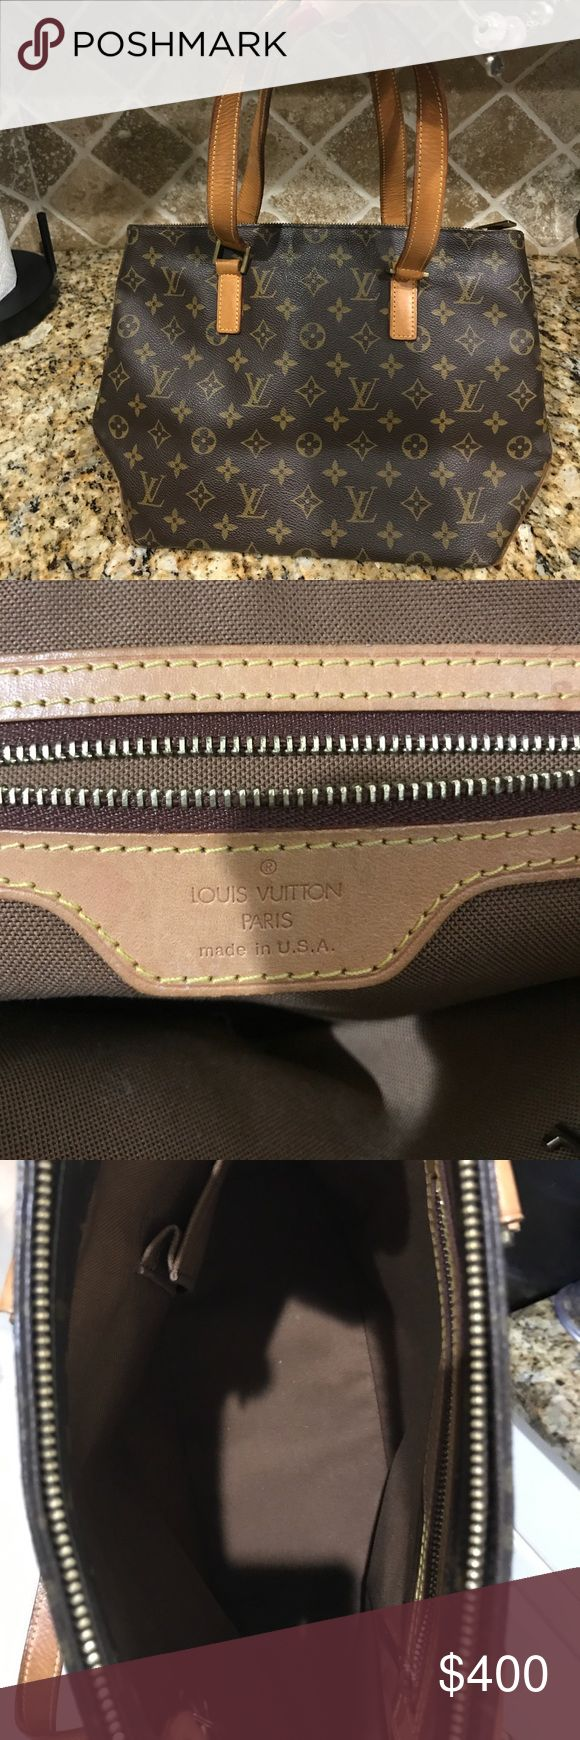 """Authentic Louis Vuitton Cabas Piano Excellent condition pre owned Shoulder Tote handbag by Louis Vuitton. Comes with dust bag, no box . (Purchased at the store in New Jersey by a friend). No scratches rips marks or tears. Some small marks on leather straps and bottom typical of all authentic Louis Vuitton's. Slight storage smell that would go away with use. This sweet baby is just siting in its dust bag longing for use. Great everyday bag.   Measures 13"""" across and 10 inches high…"""